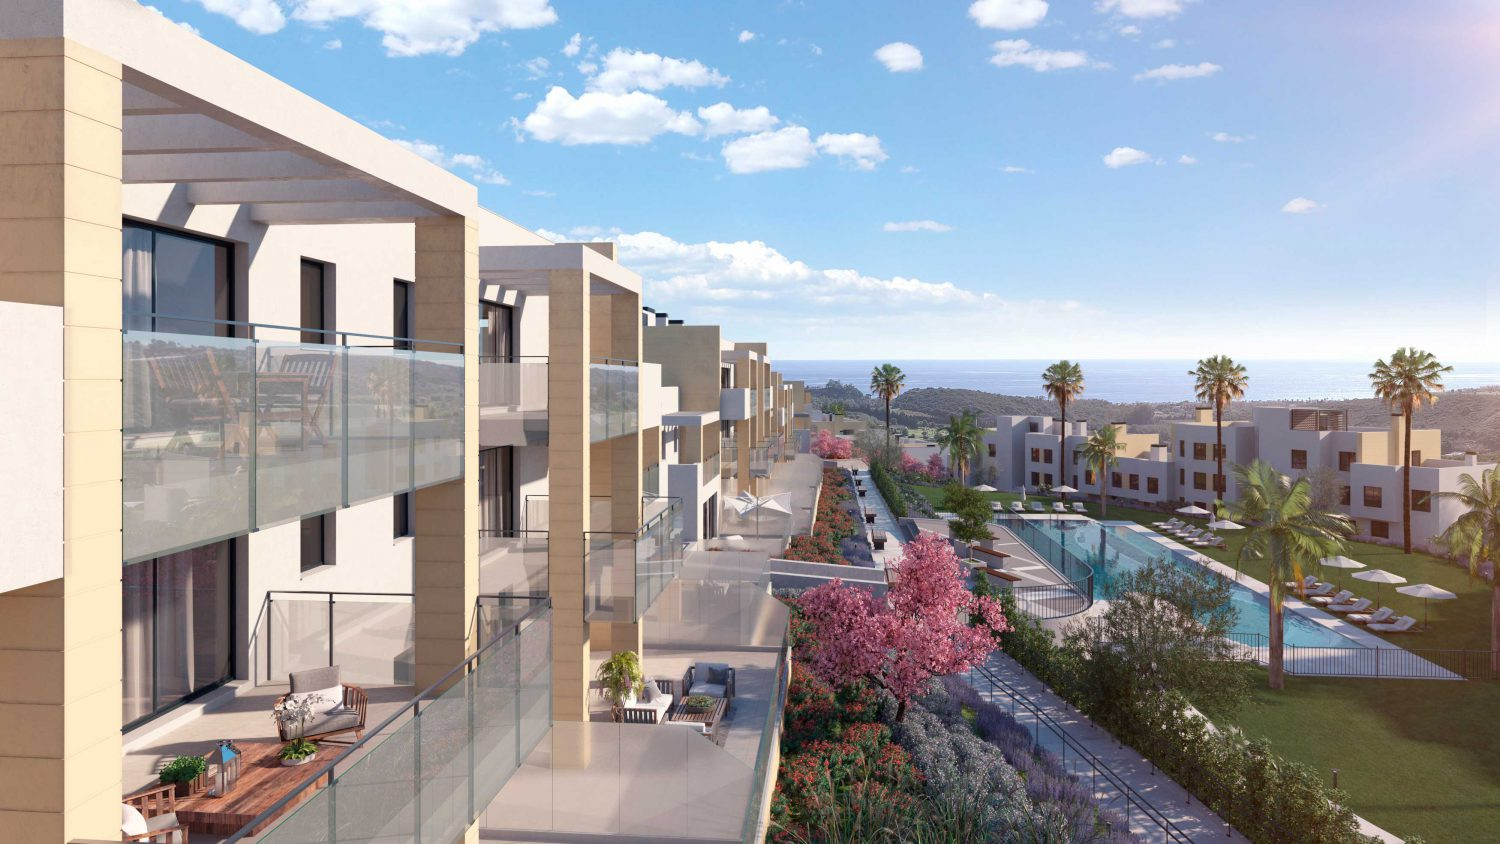 Residential complex near golf in Casares.